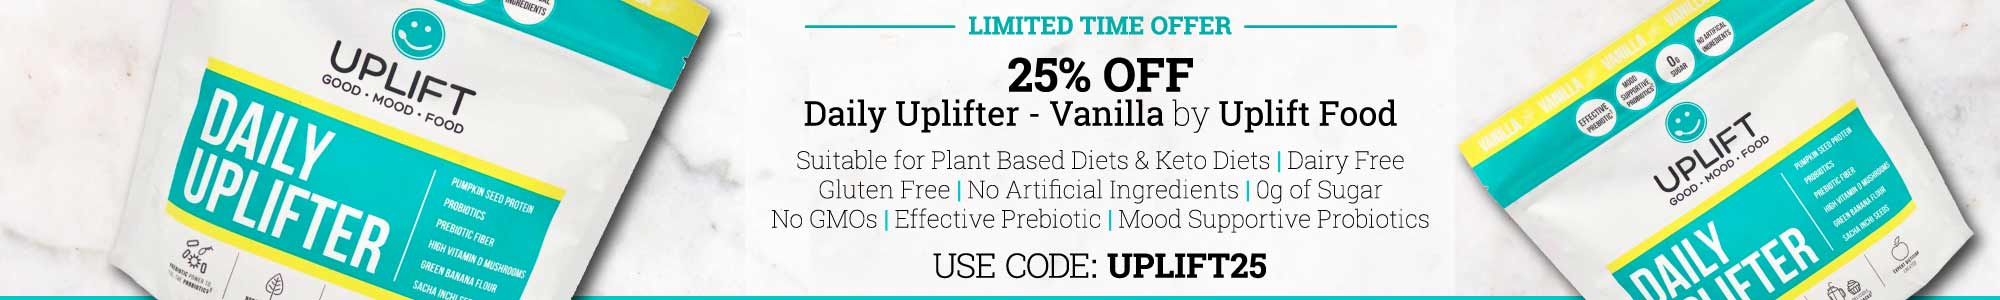 Limited Time Offer - 25 percent off Daily Uplifter - Vanilla by Uplift Food - Suitable for Plant-based and Keto diets - Use Code: Uplift25